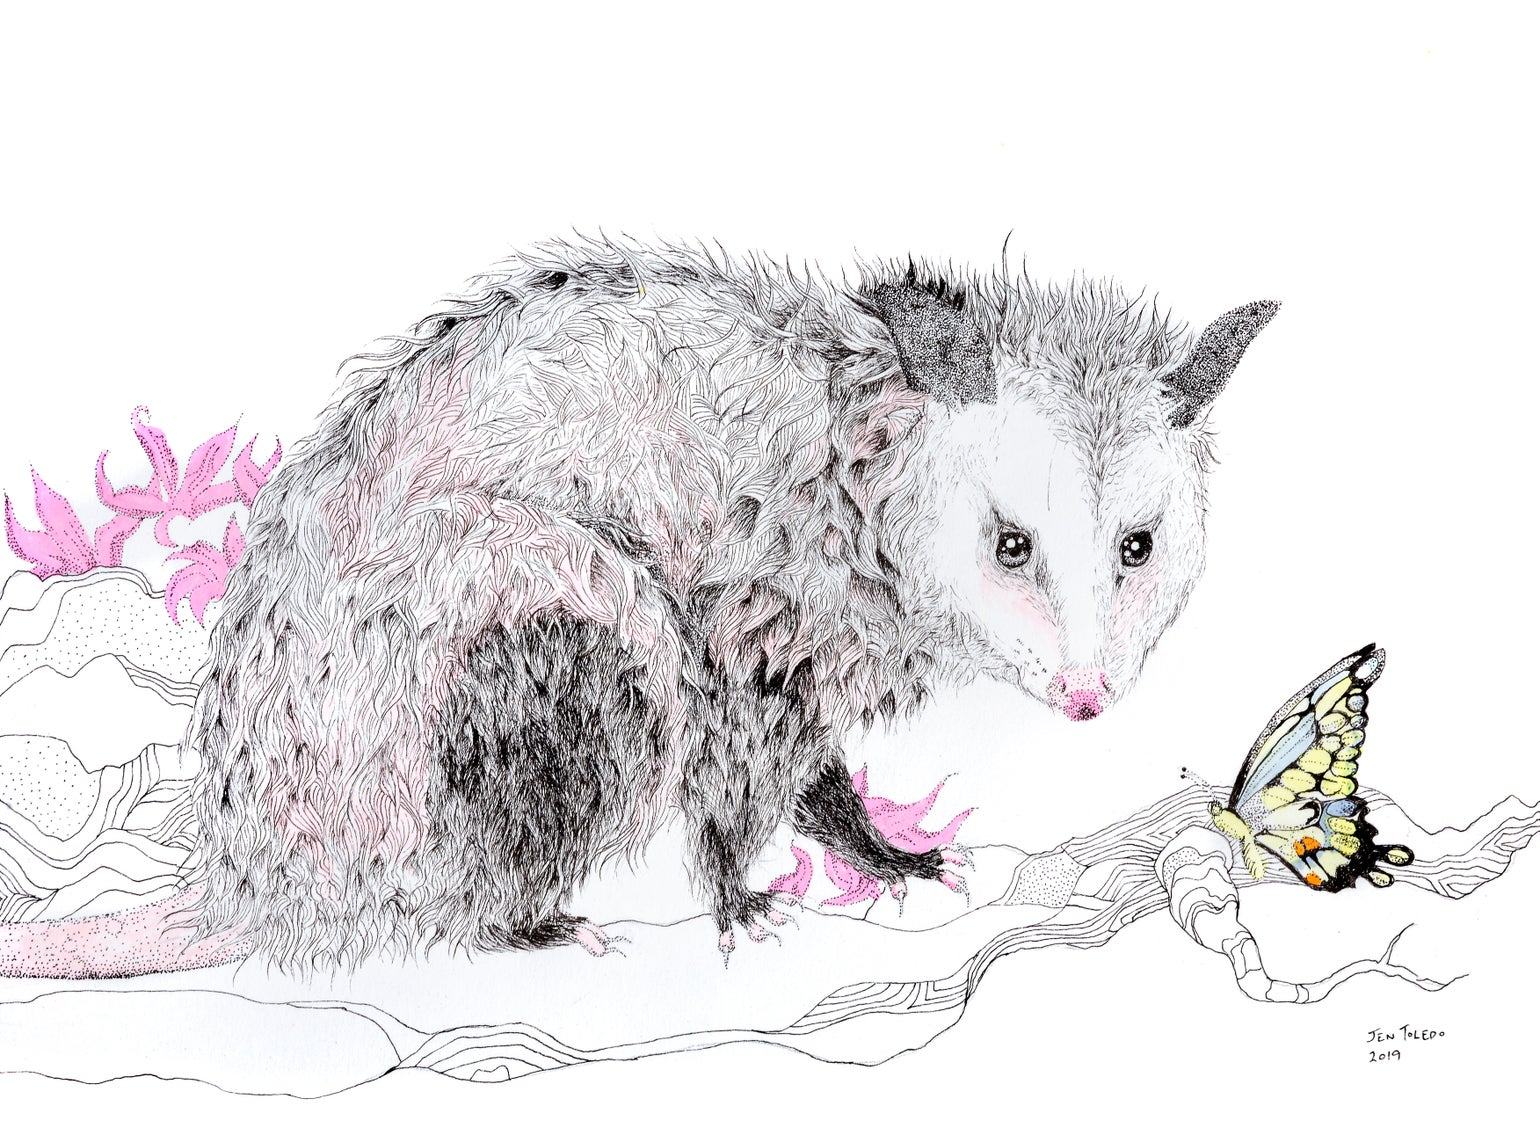 Image of Opossum (original $300)